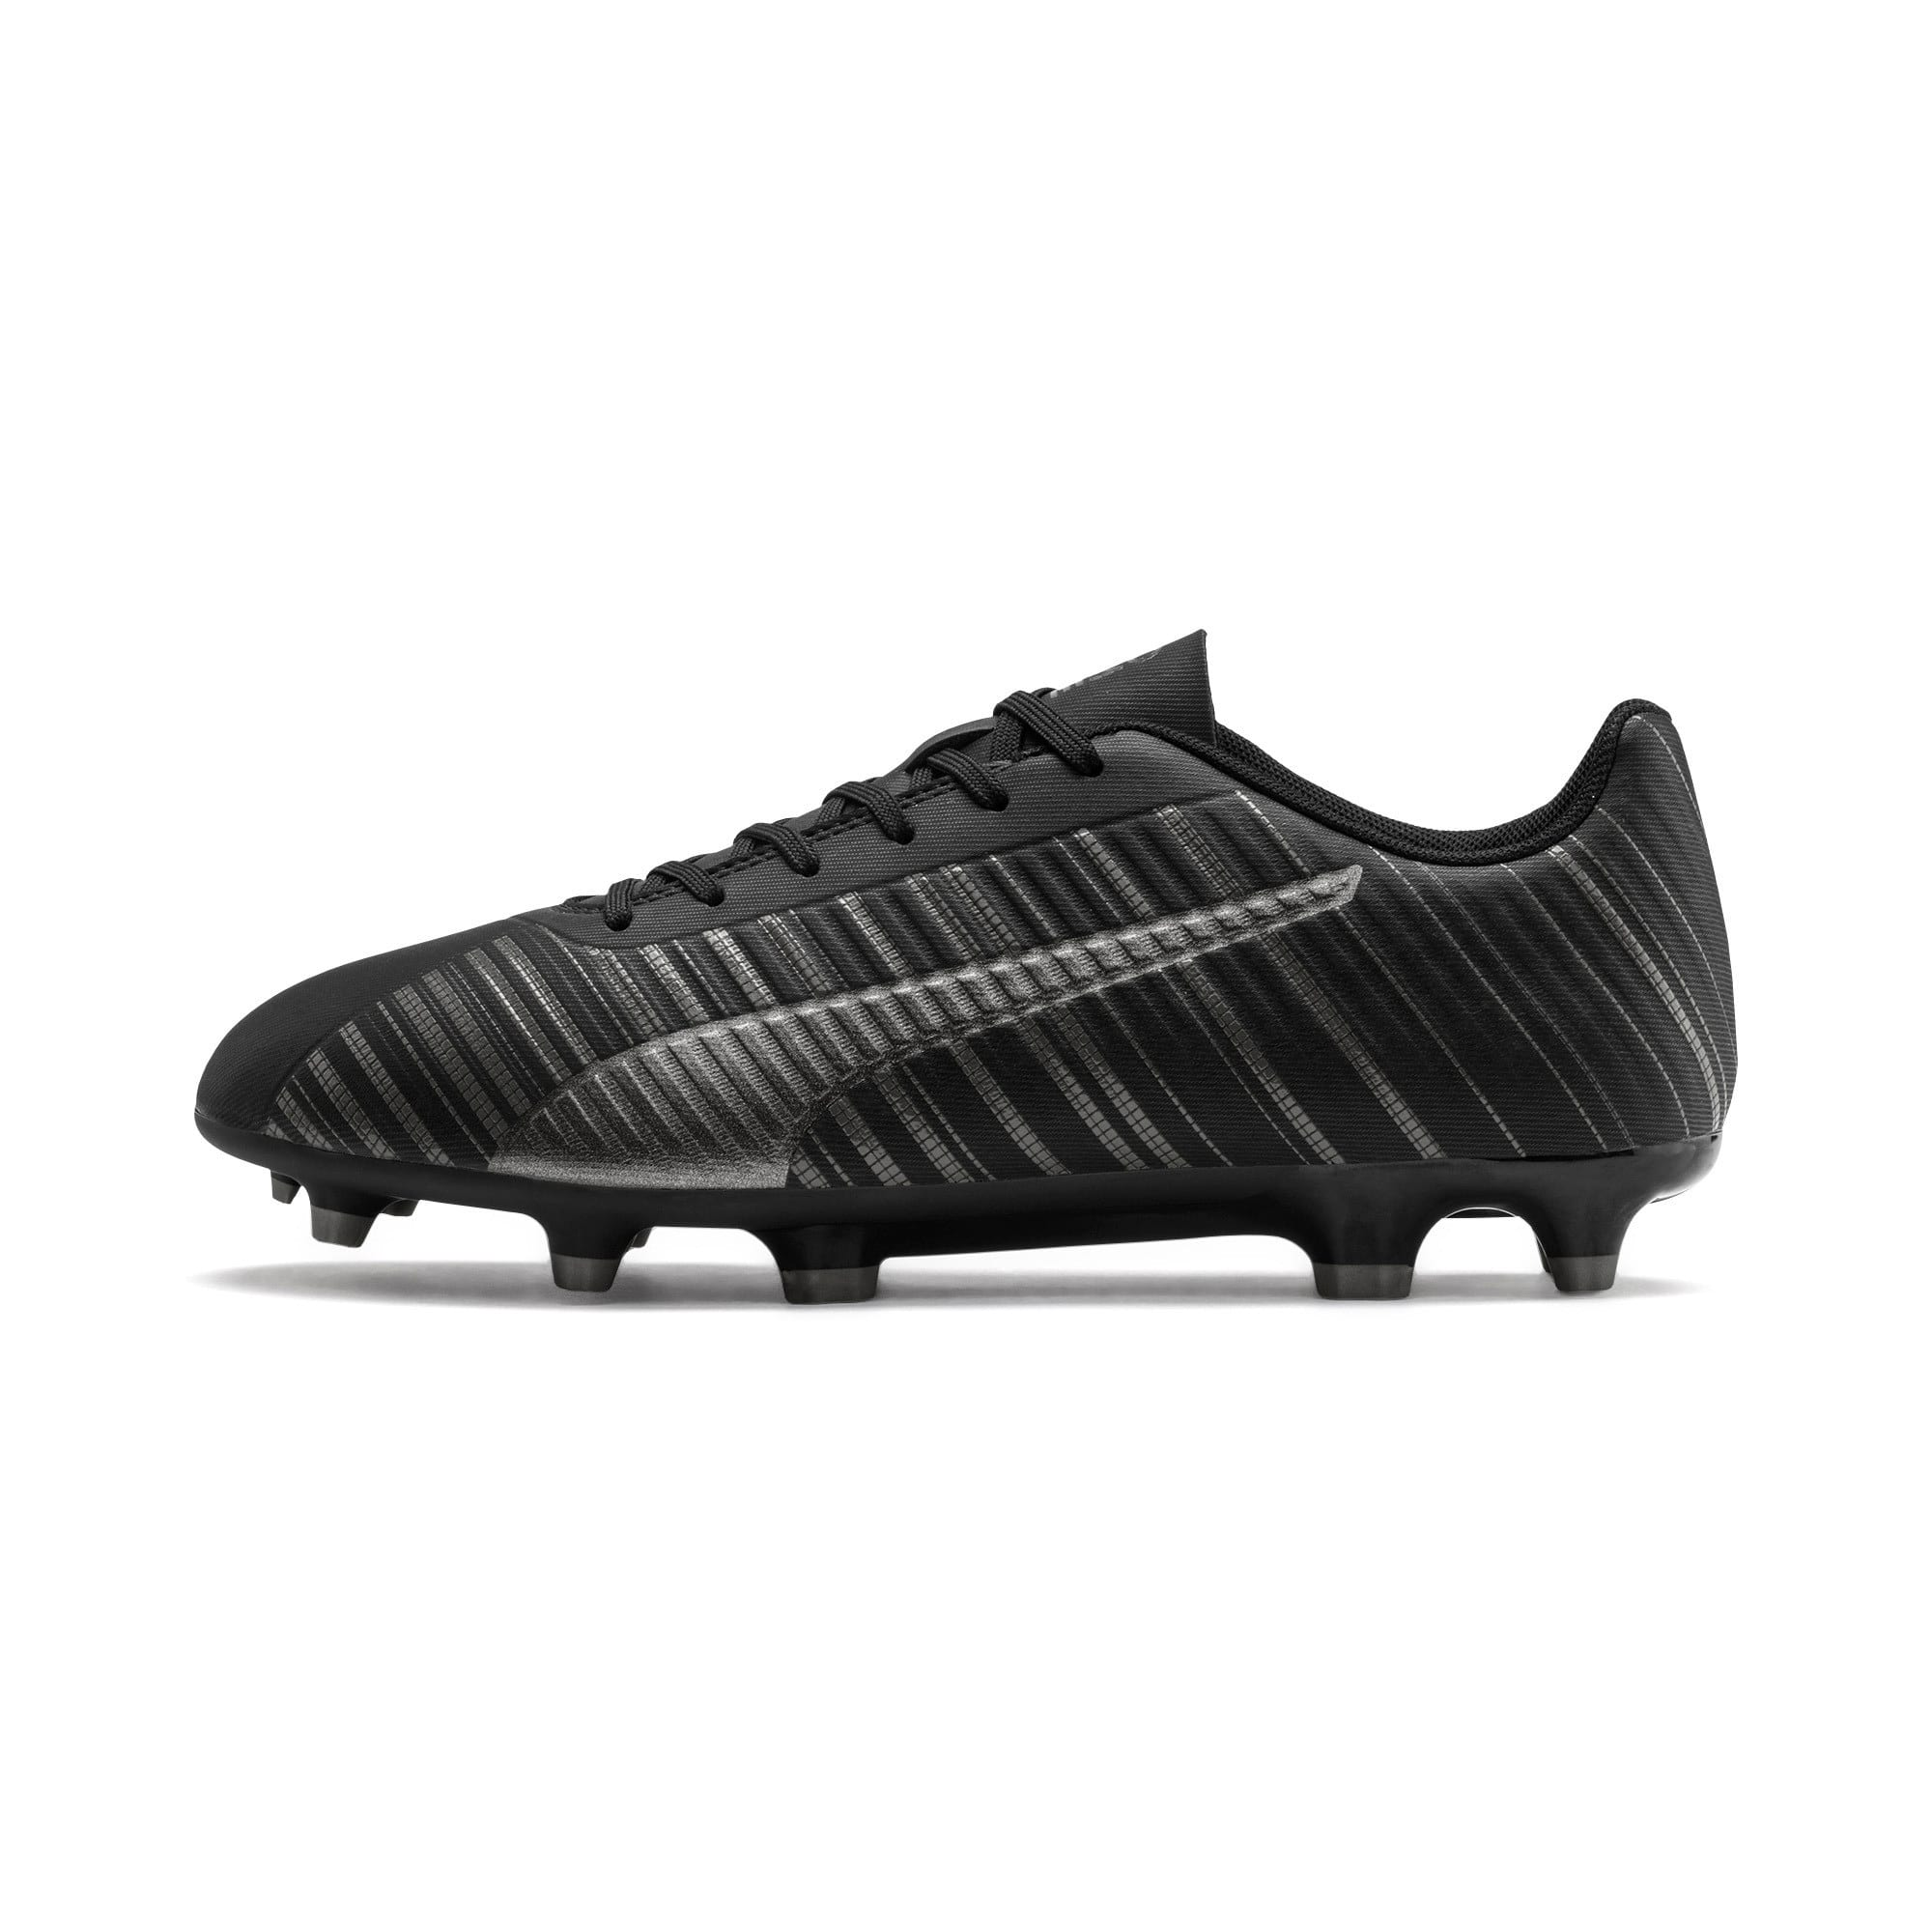 Thumbnail 1 of PUMA ONE 5.4 Men's FG/AG Football Boots, Black-Black-Puma Aged Silver, medium